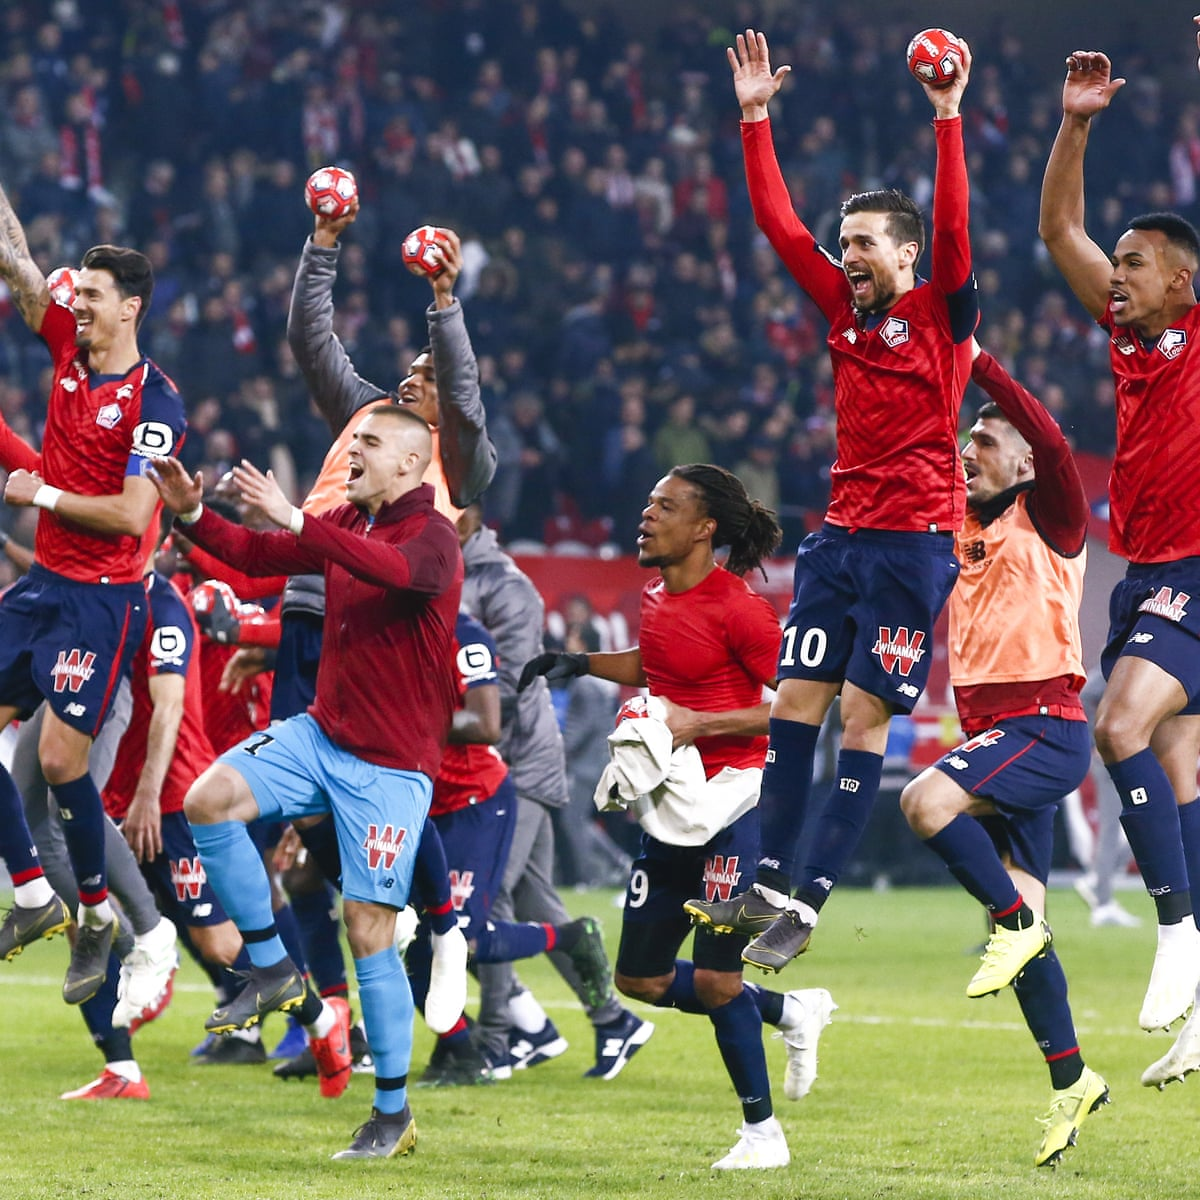 Lille Hammer Beginners Psg As They Close In On The Champions League Paris Saint Germain The Guardian